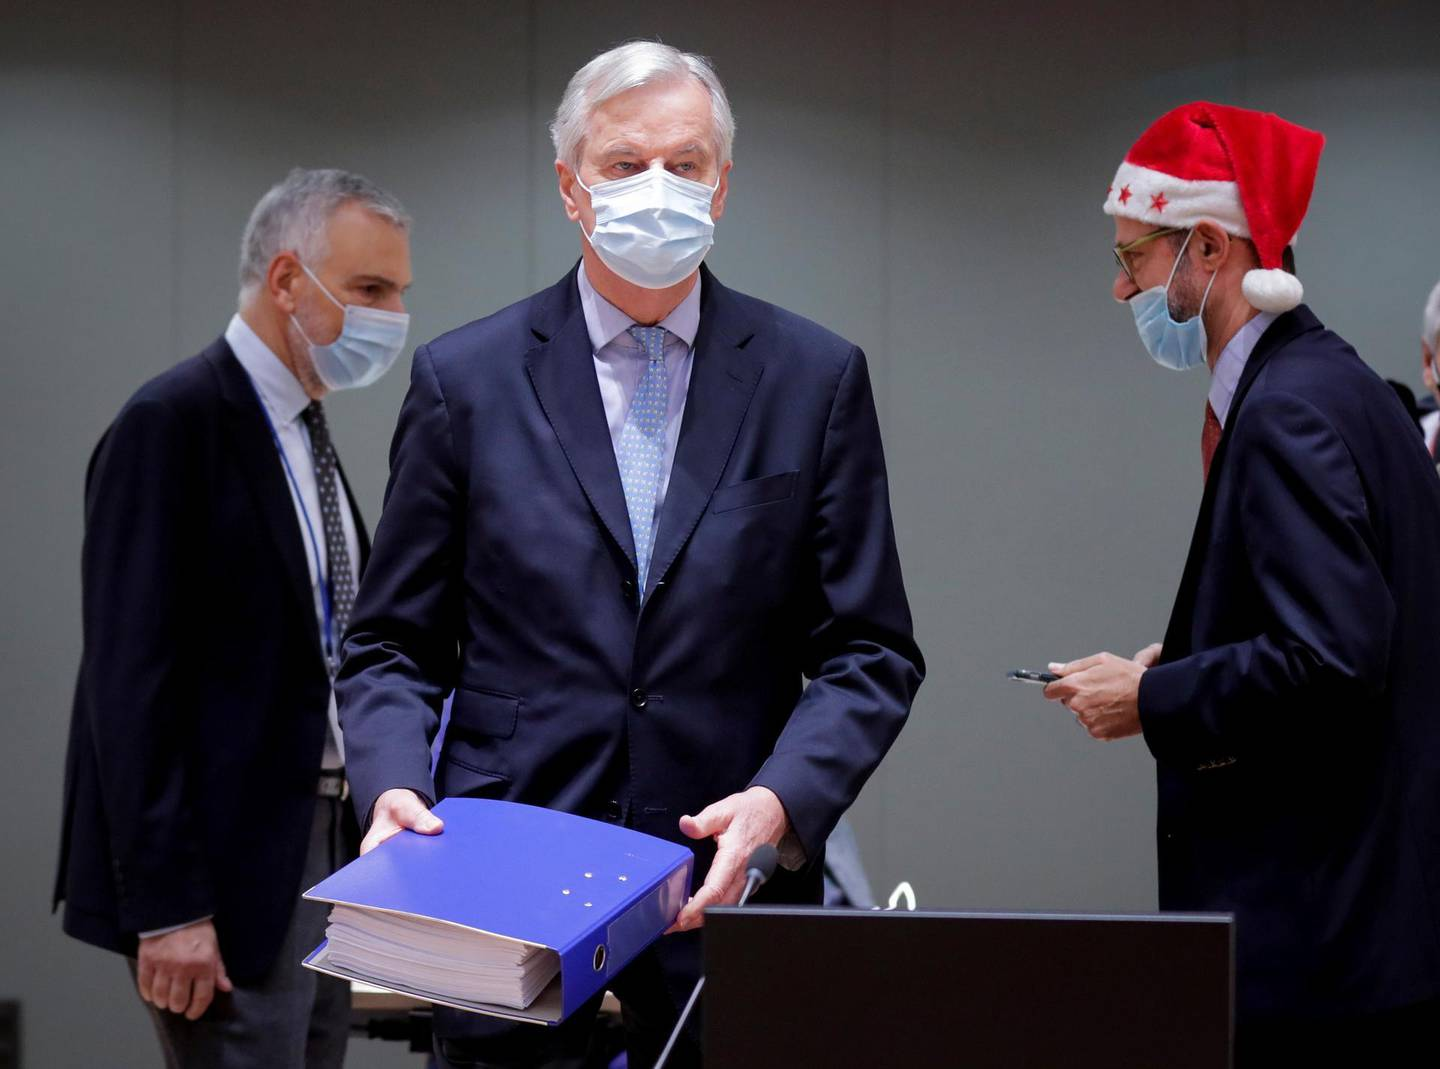 European Union's chief Brexit negotiator Michel Barnier holds the pages of Brexit trade deal as he attends a meeting of the Committee of the Permanent Representatives of the Governments of the Member States to the European Union (COREPER) in Brussels, Belgium December 25, 2020. Olivier Hoslet/Pool via REUTERS     TPX IMAGES OF THE DAY